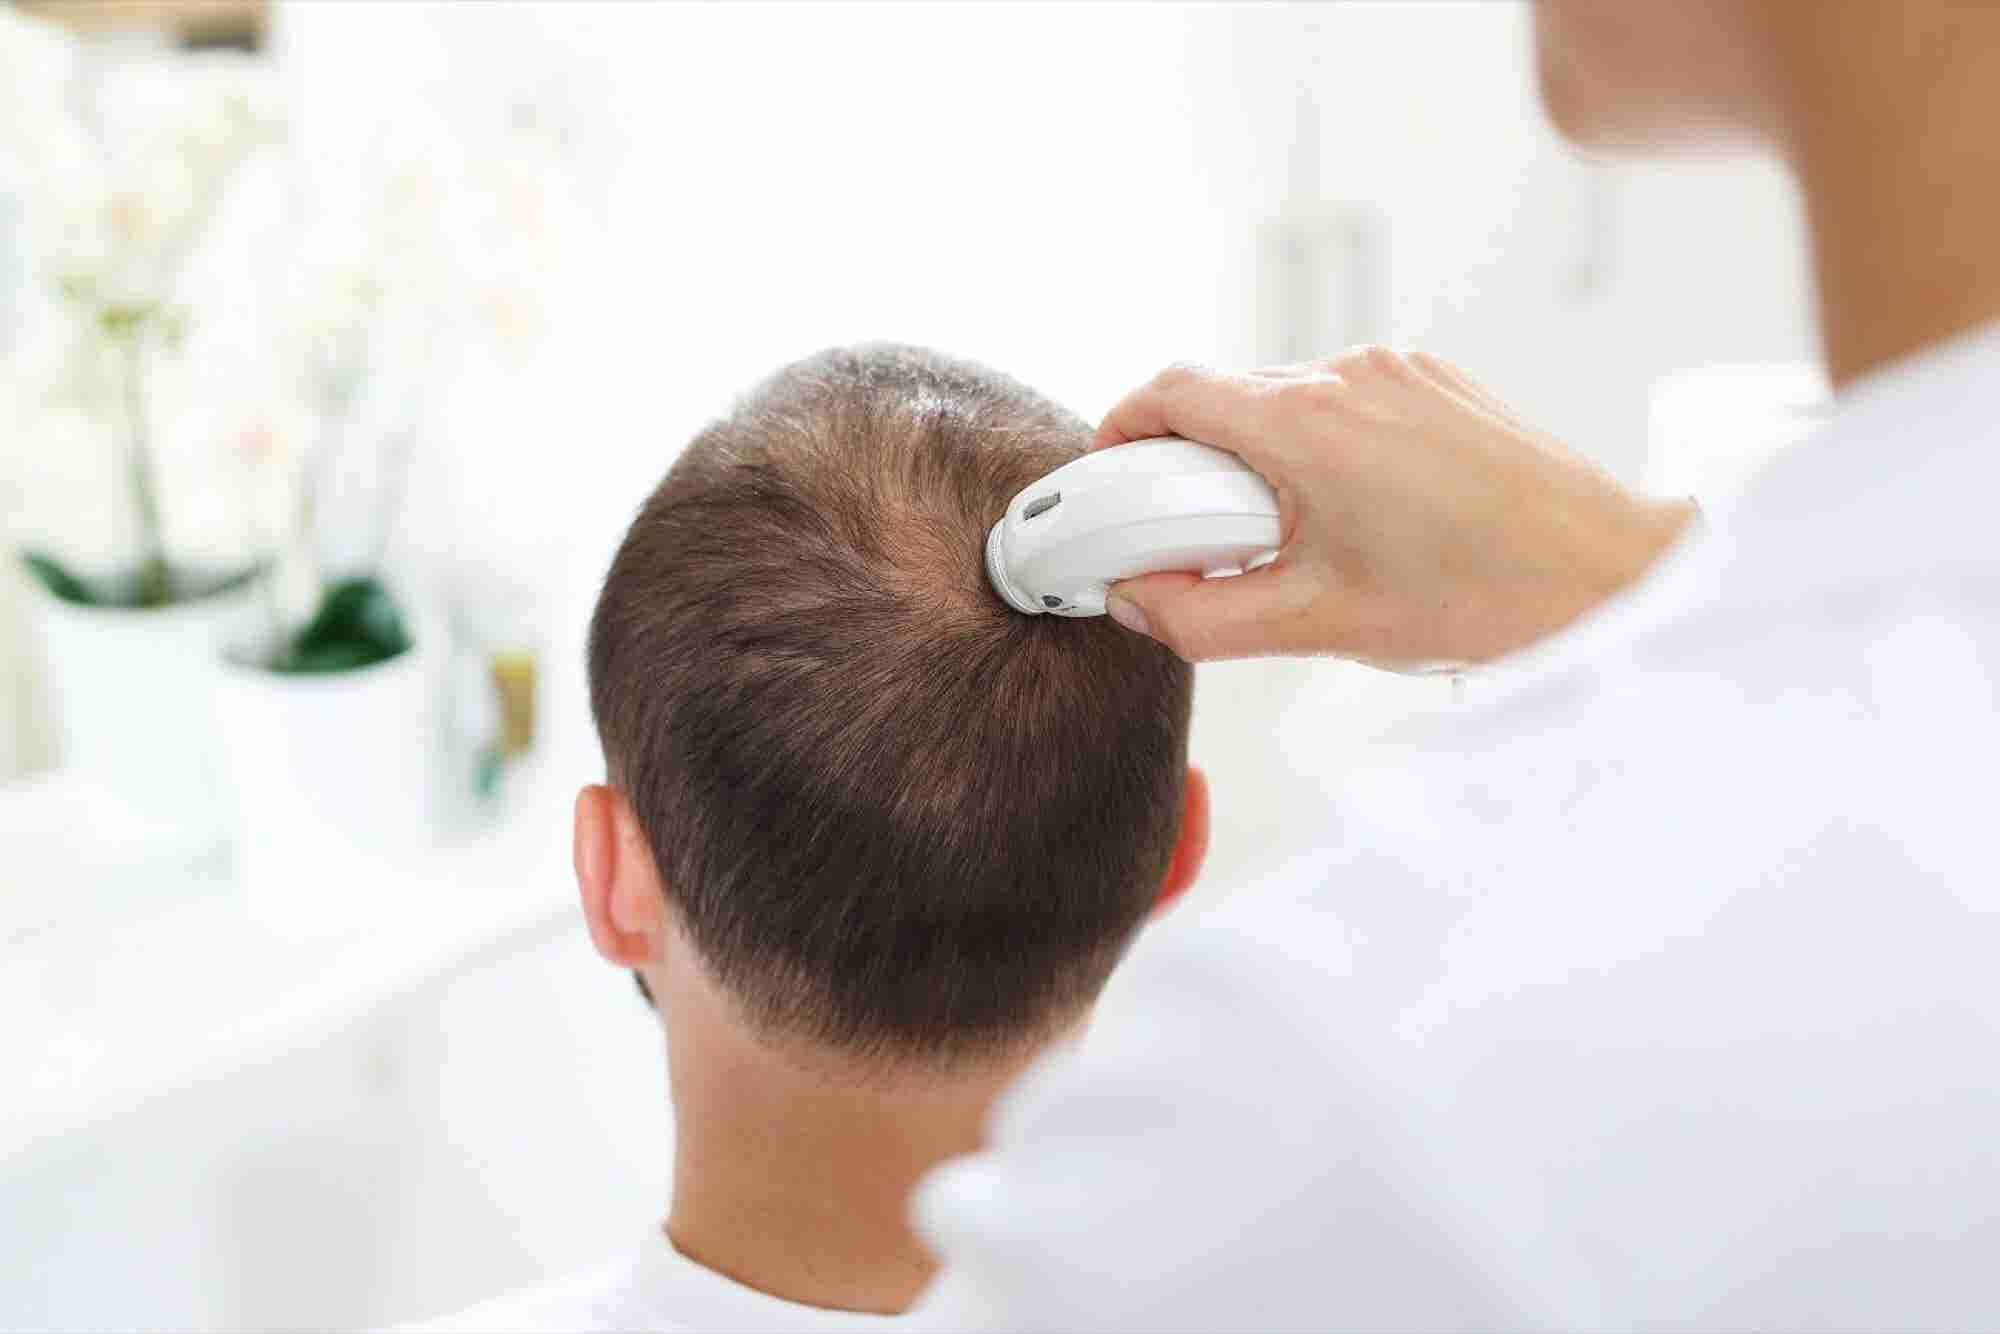 Men's Grooming Sector has Lucrative Opportunities for Growth